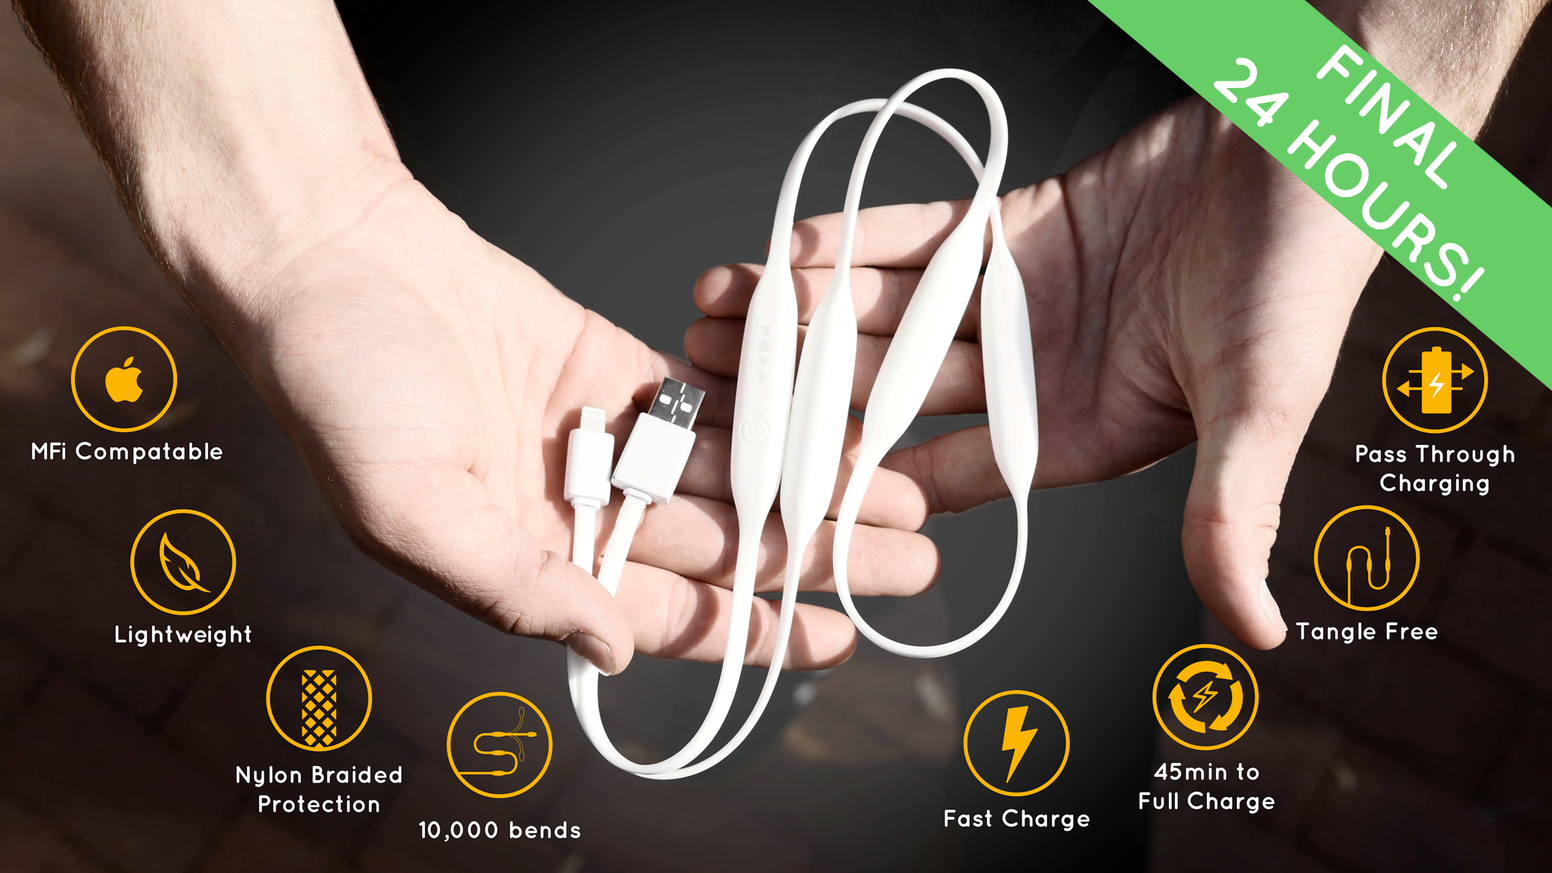 The Portal Cord redefines portable power by storing power within the cord to charge your device outlet free!